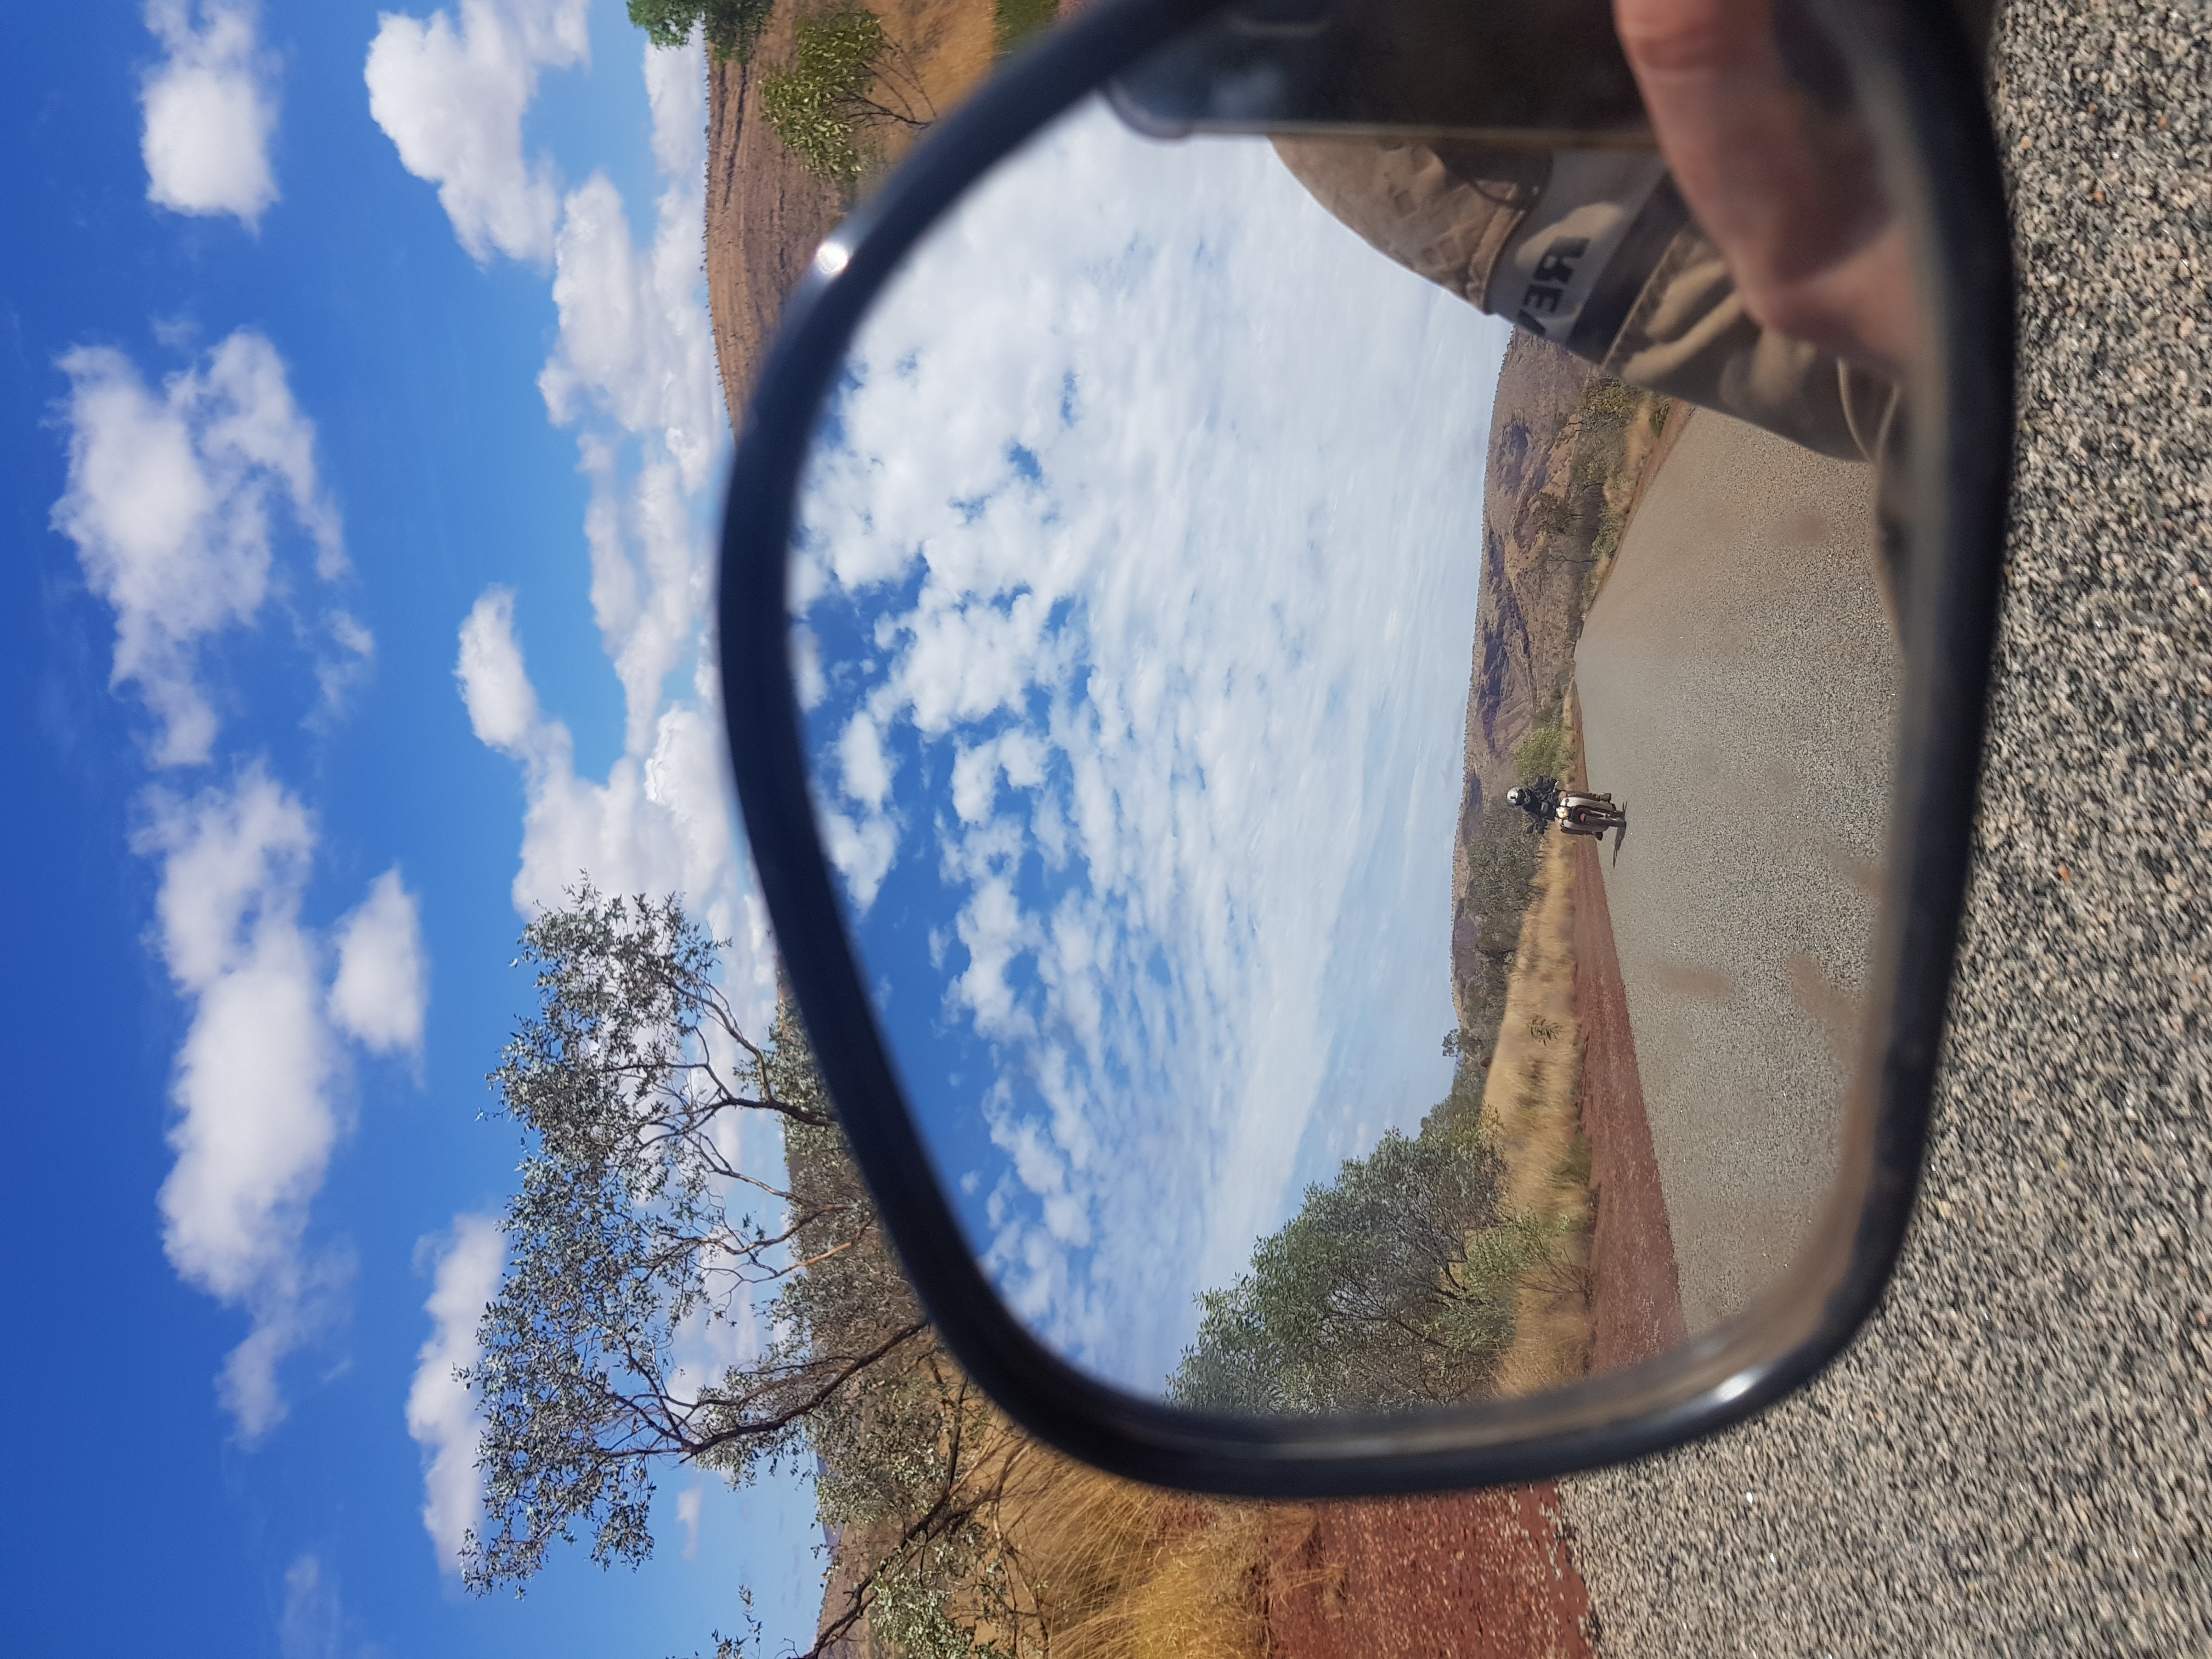 Postie Bike Adventures in rear view